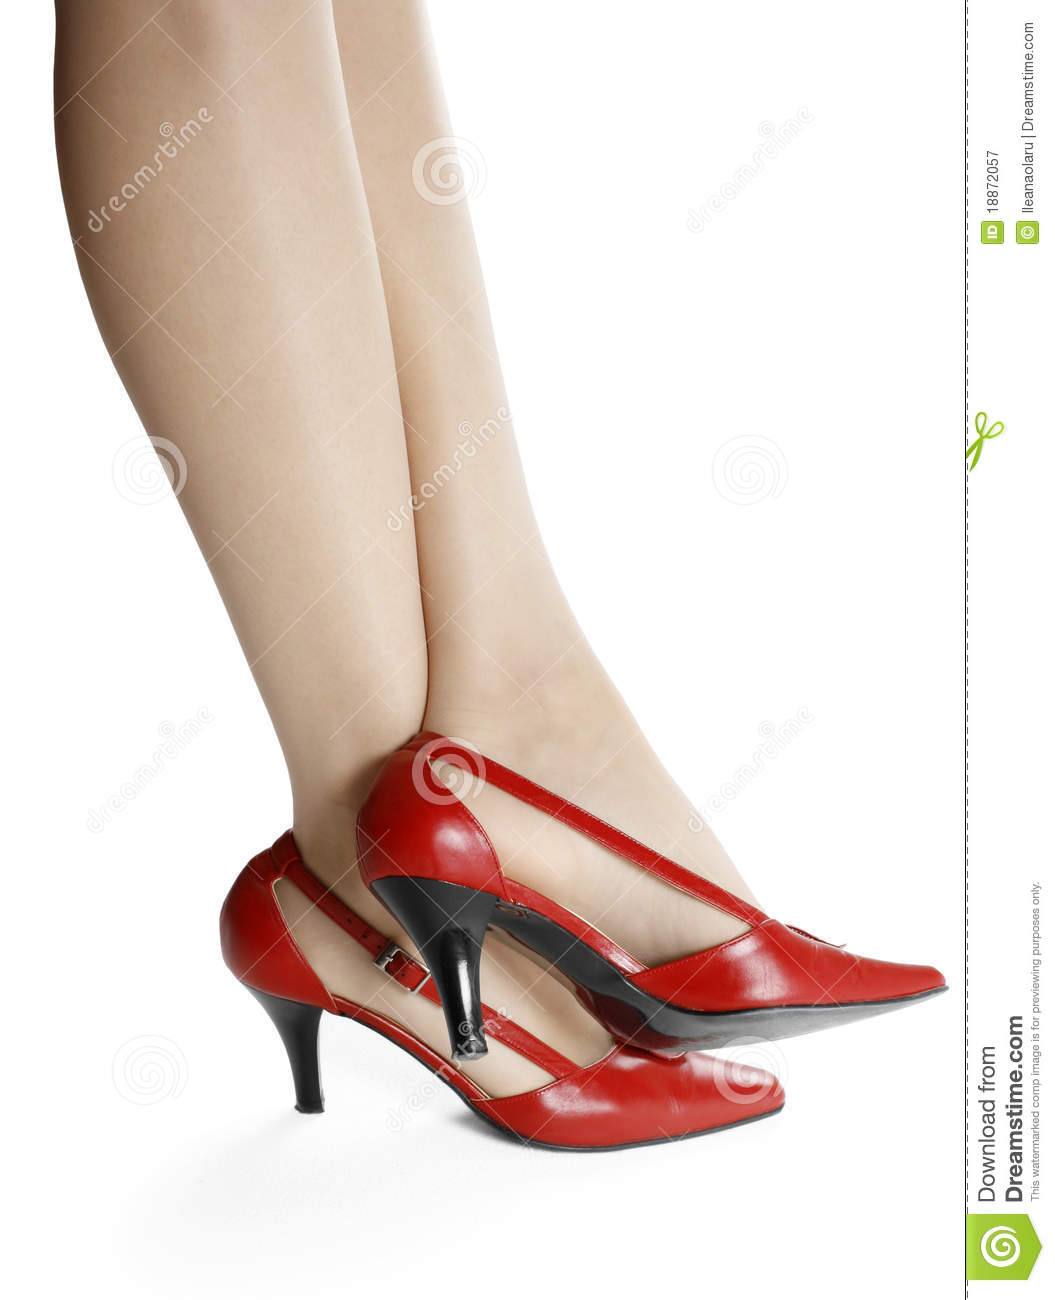 Slim Legs And Red Shoes Royalty Free Stock Photography ...